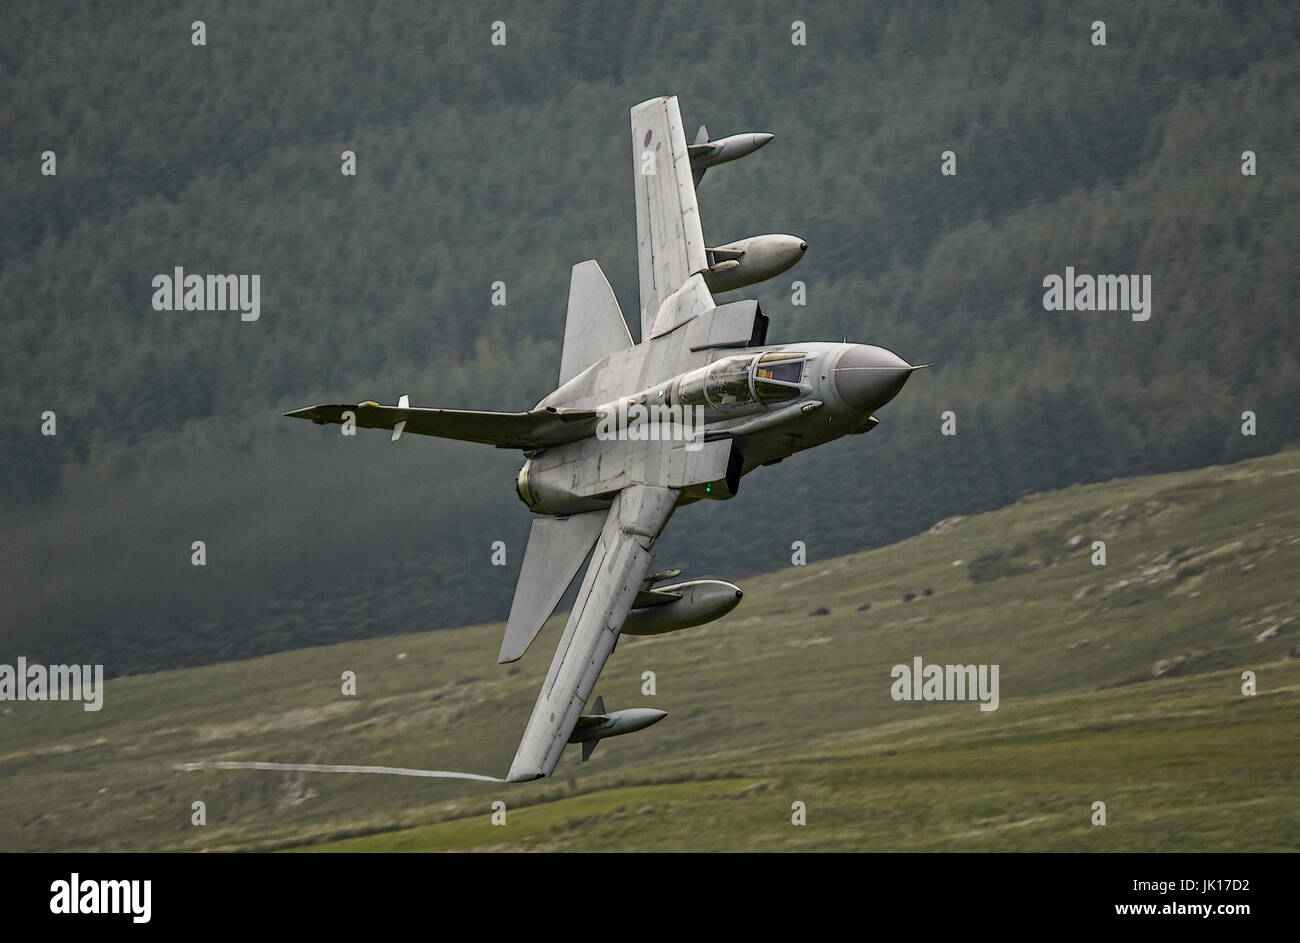 Royal Air Force Tornado GR4 on a Low Level training mission. - Stock Image